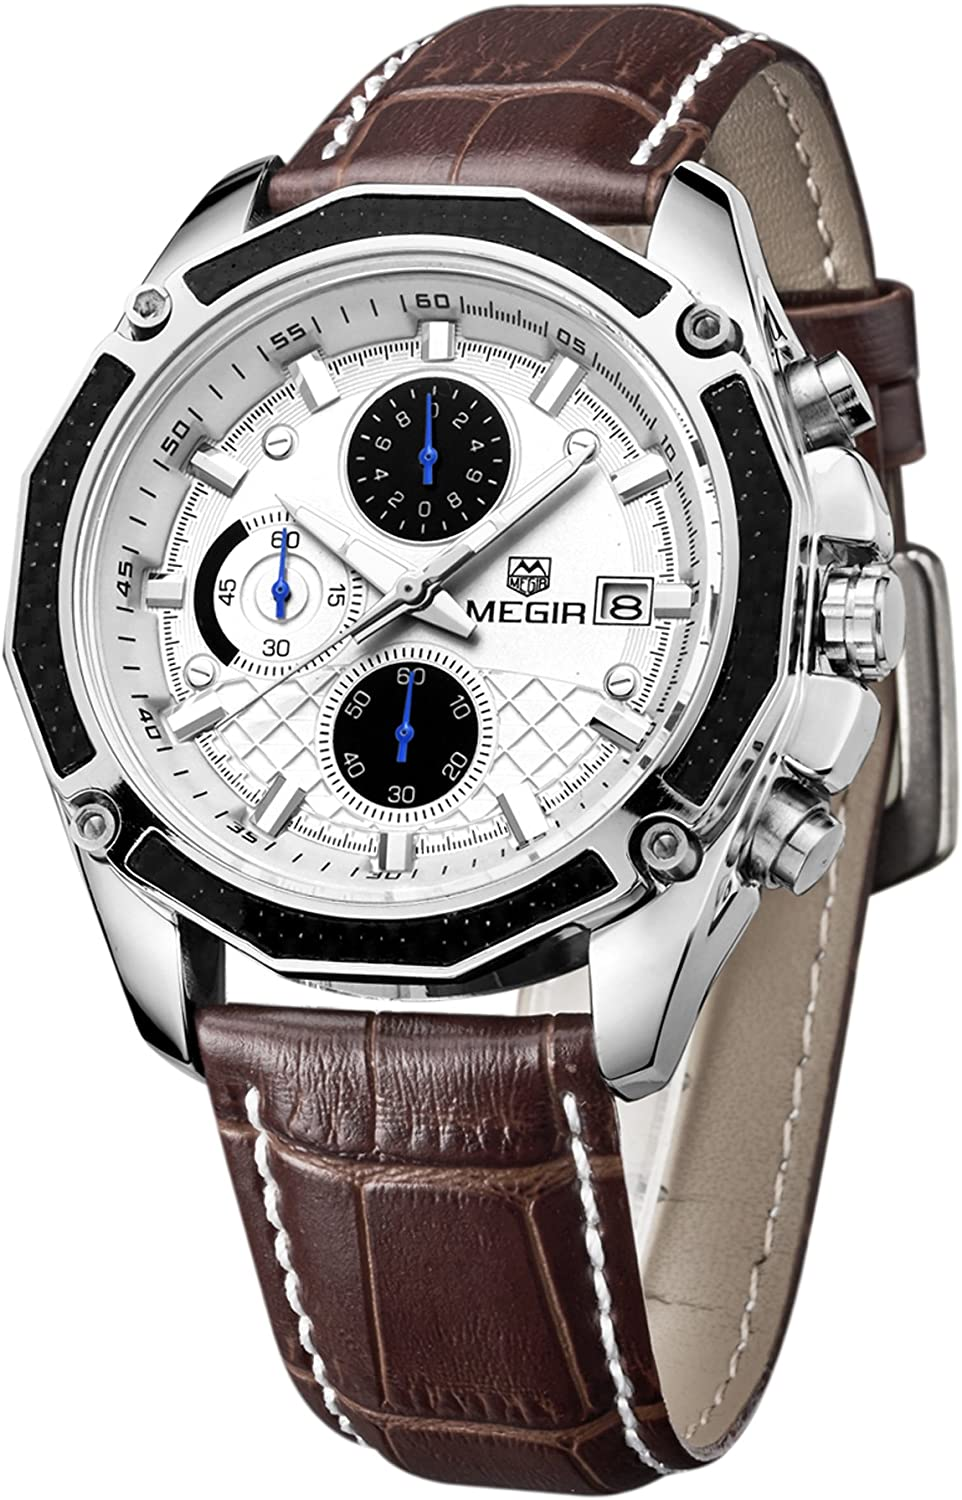 Mens Military Multifunction Quartz Wrist Watch Chronograph Sport Watches Brown Leather